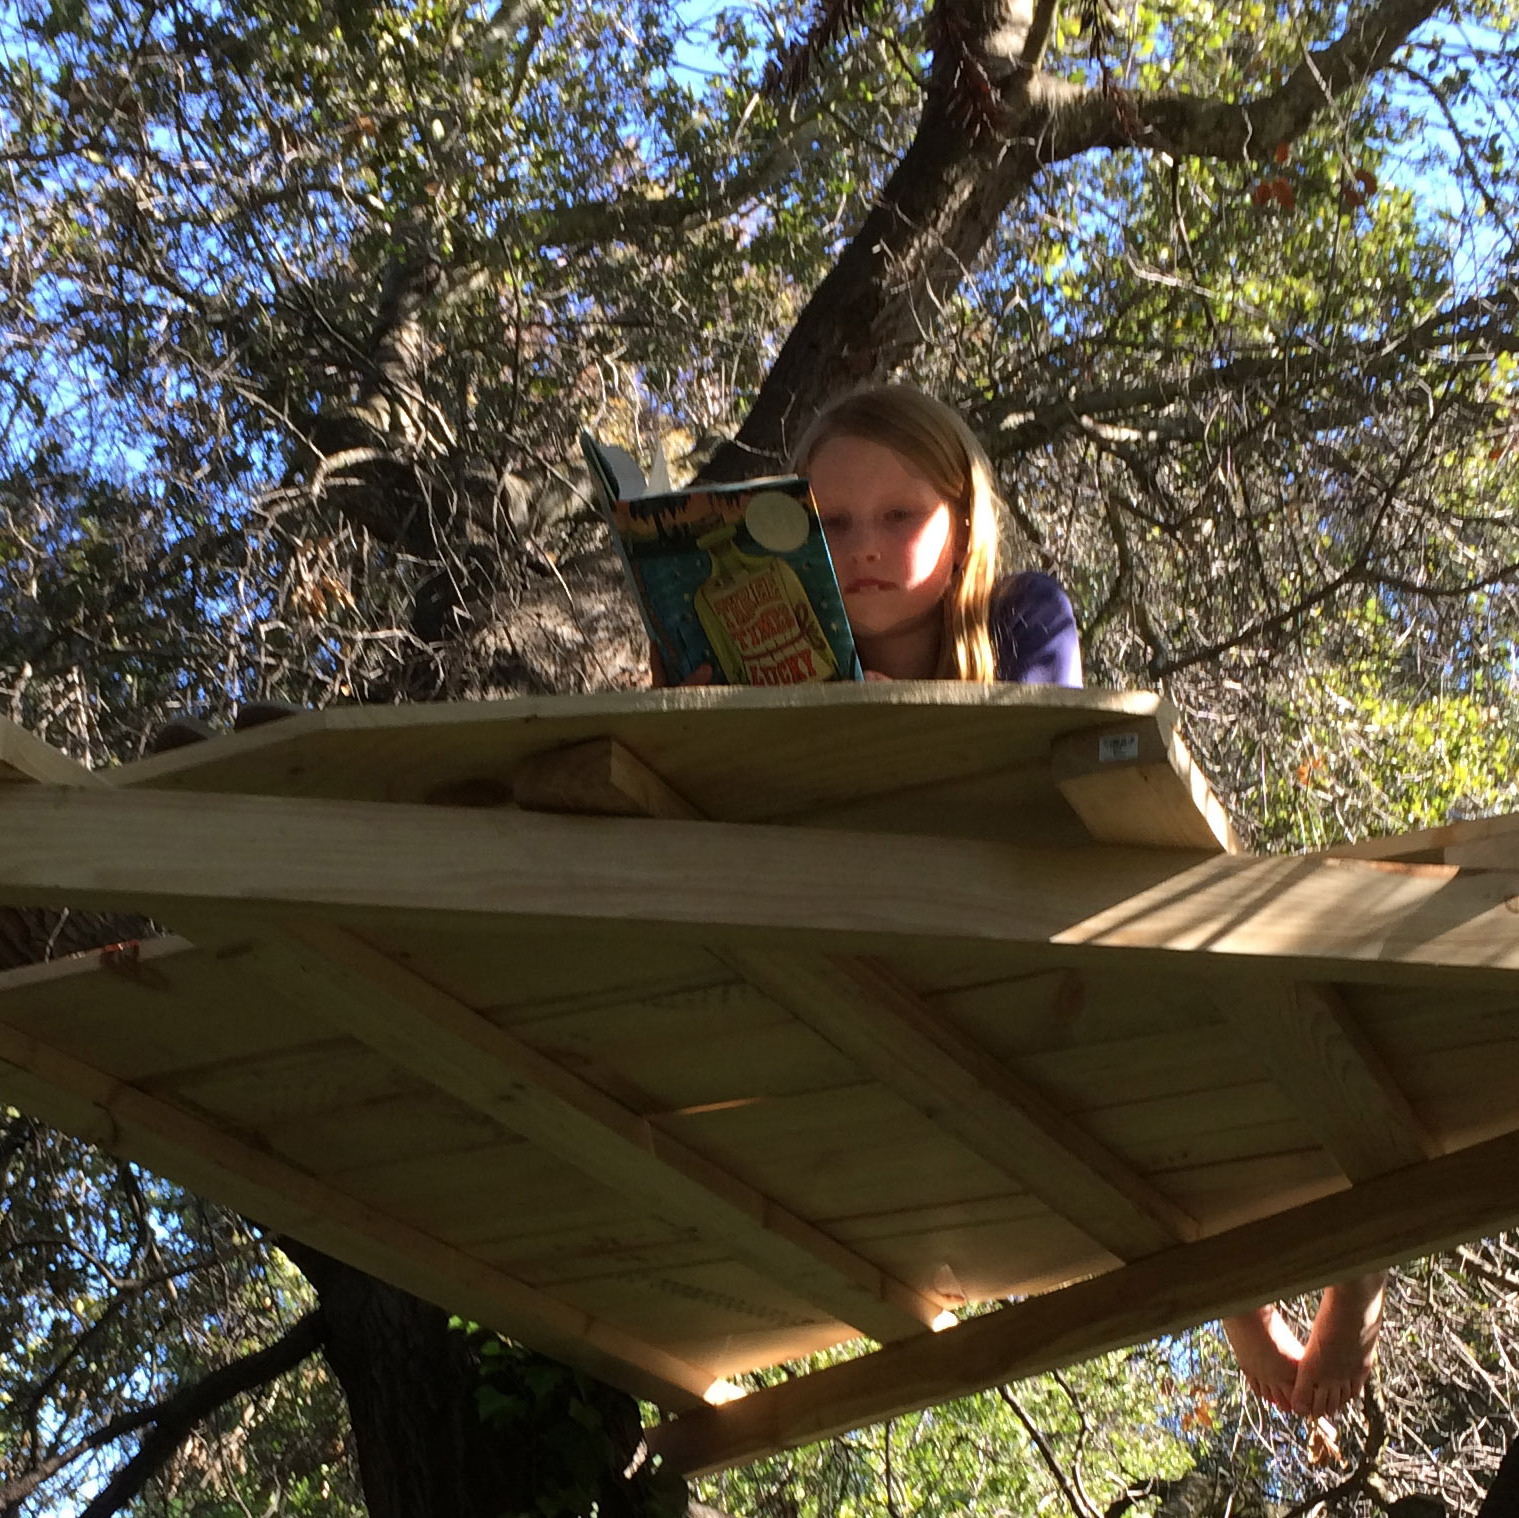 Steve Henn's daughter, Faye, in a tree house, which they built together after he put away his smartphone for the weekend.